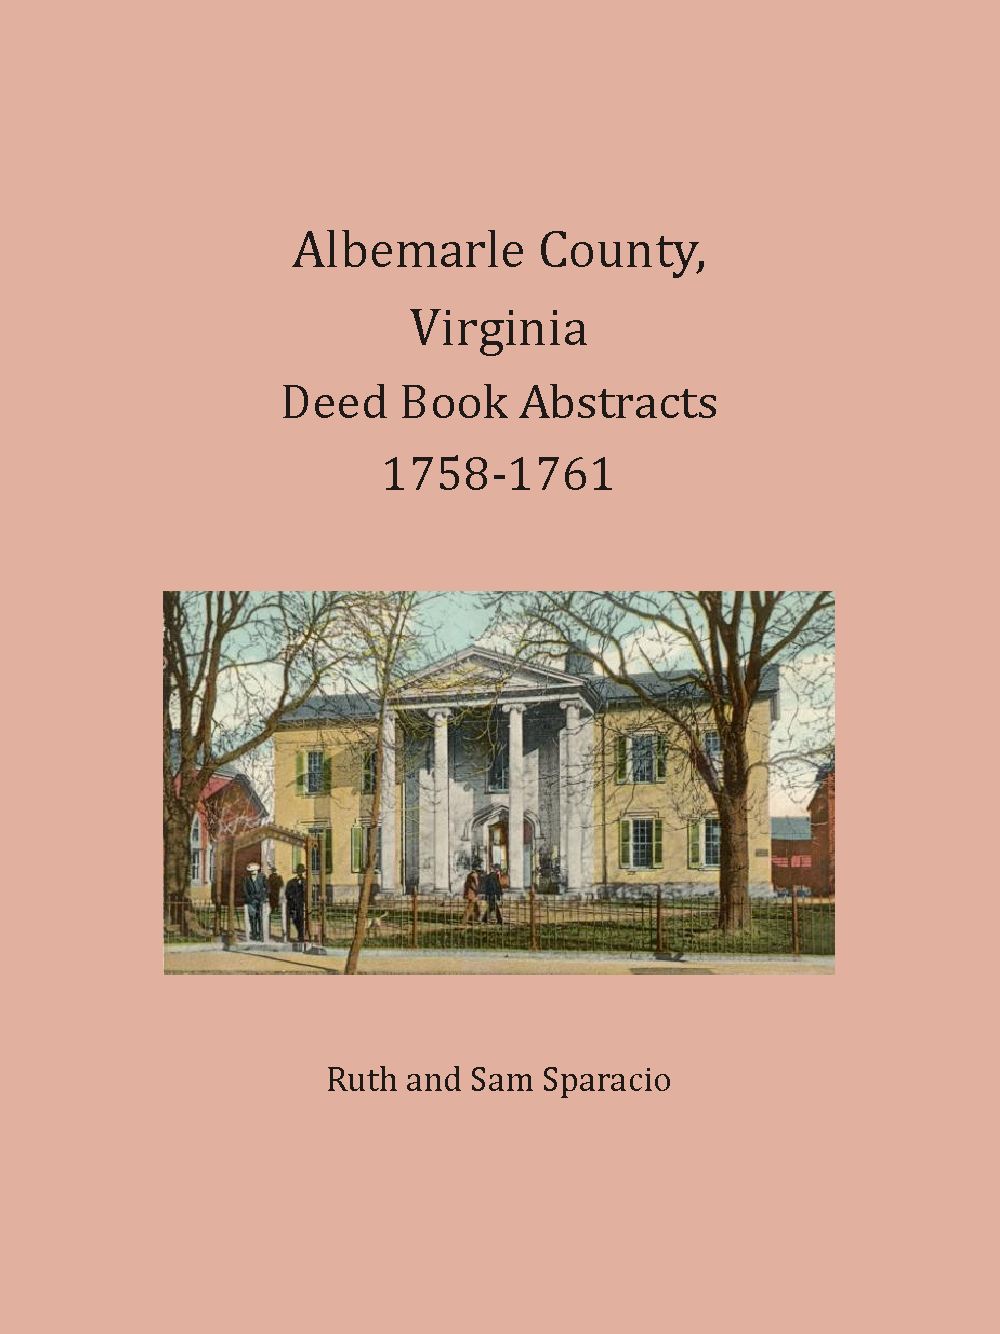 Albemarle County, Virginia Deed Book Abstracts, 1758-1761